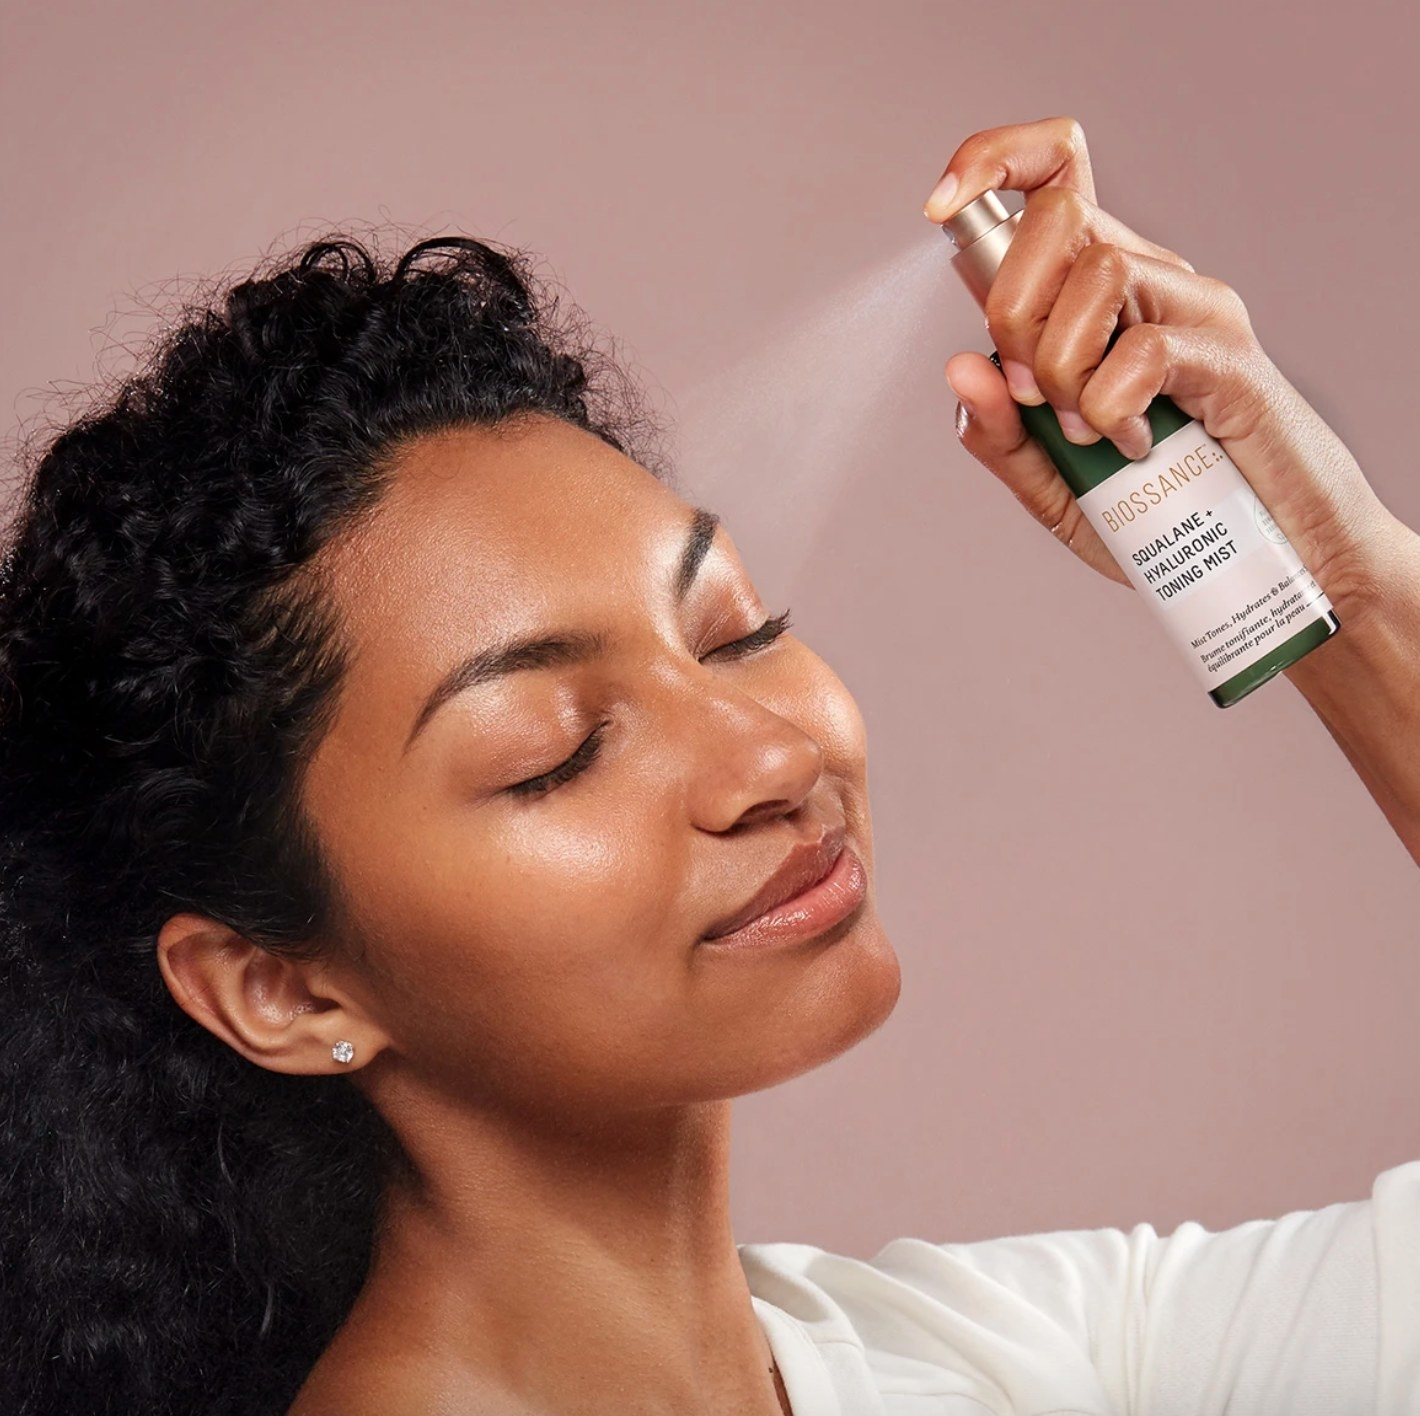 The squalane + hyaluronic toning mist in a green spray bottle